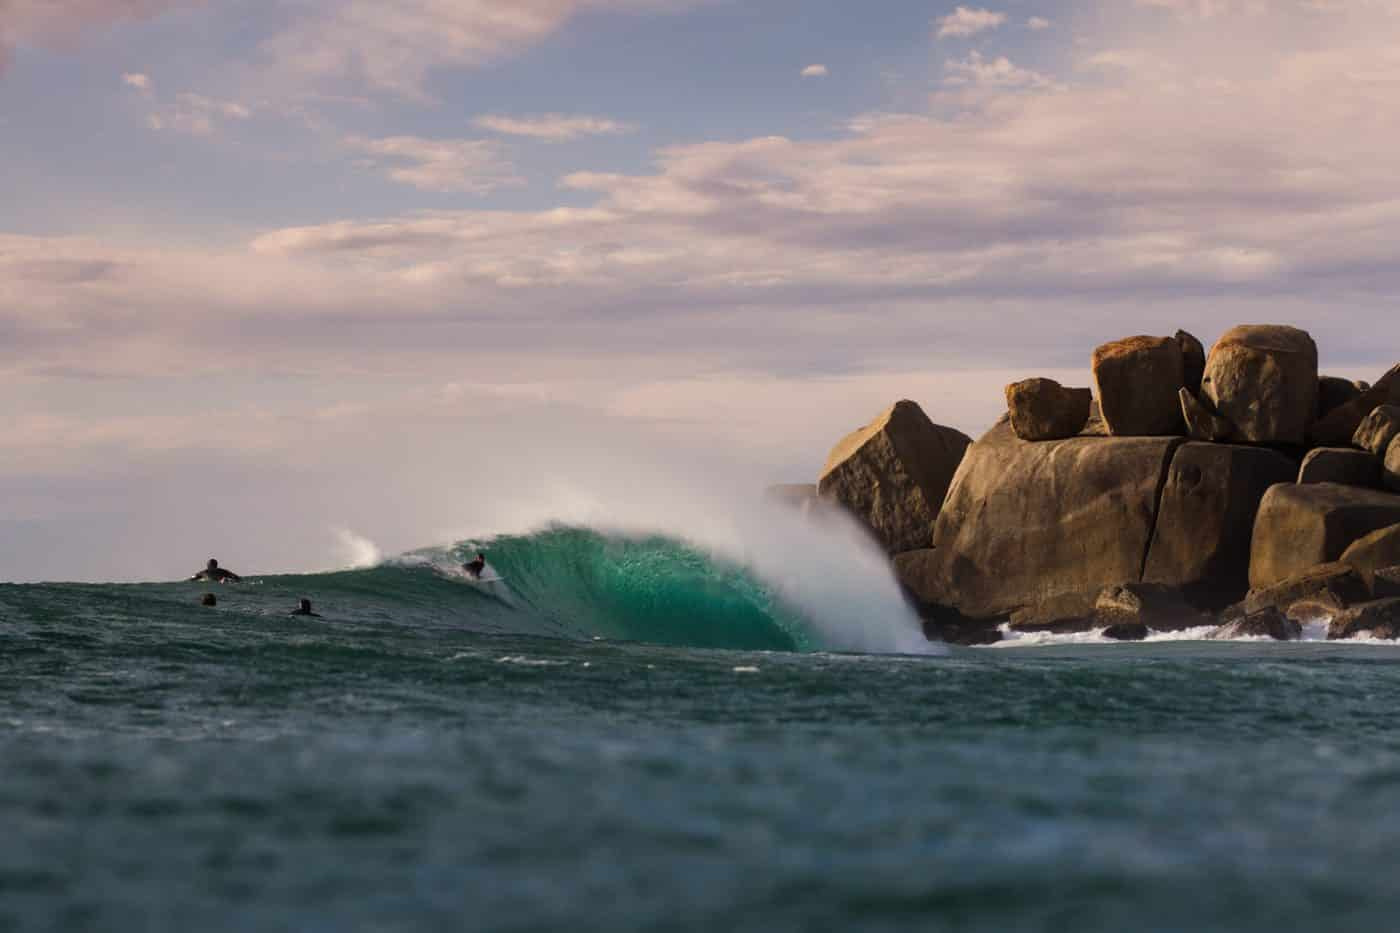 Surf Trip photo by Simon Heale